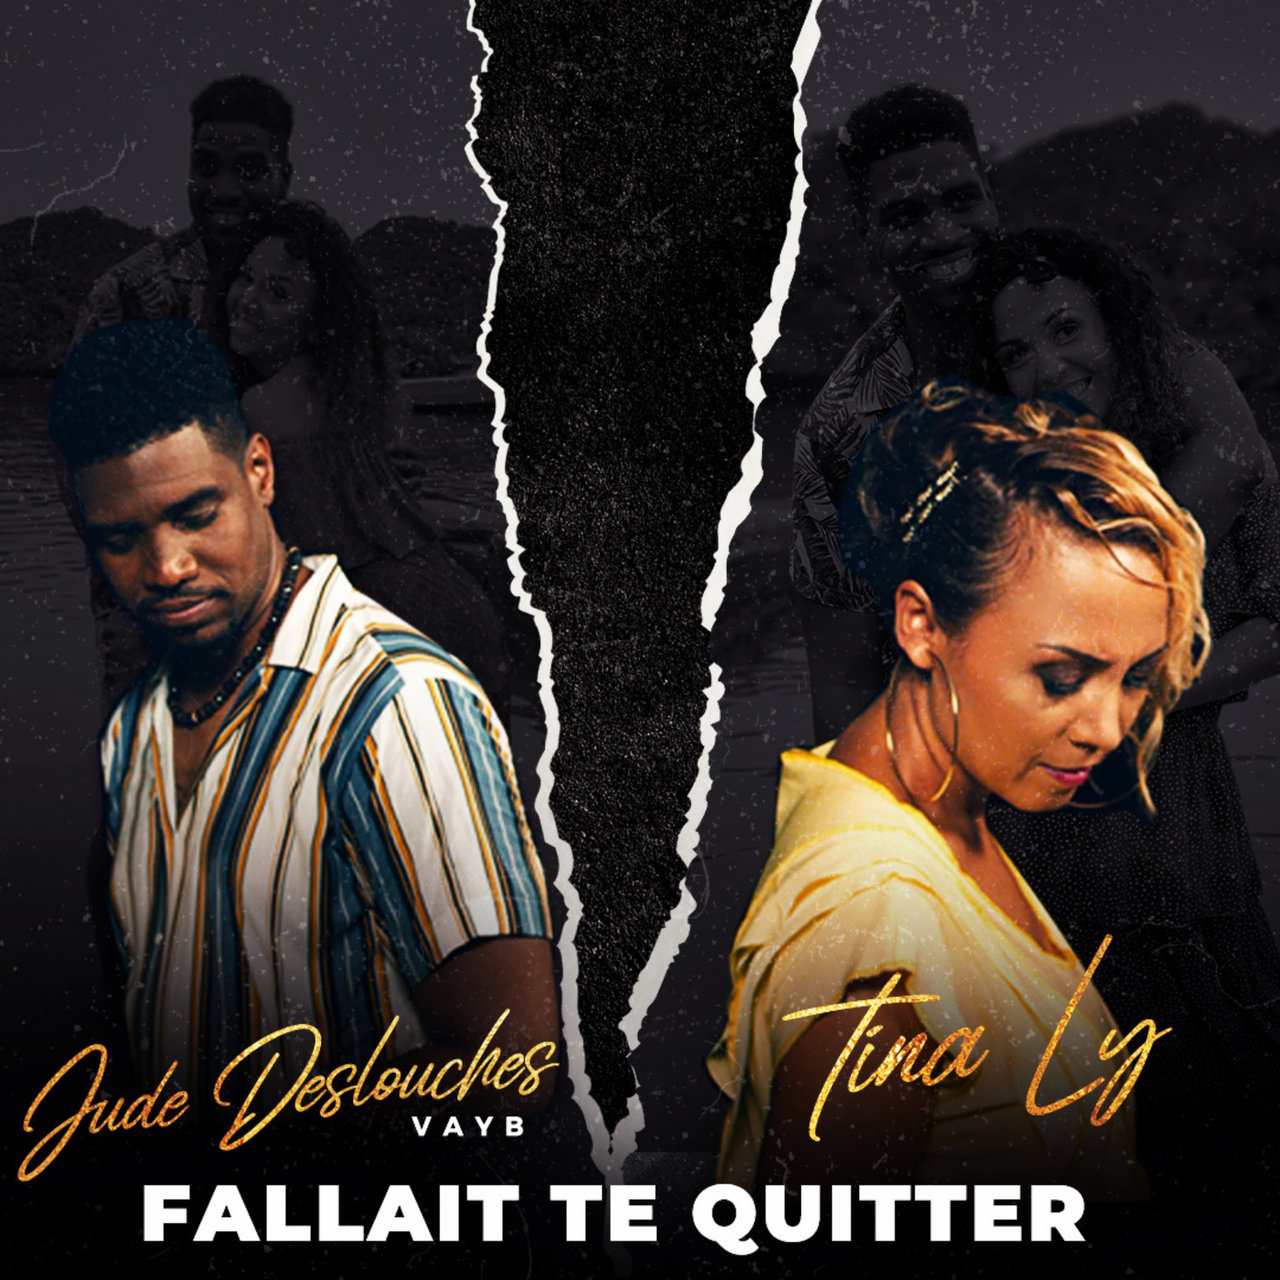 Tina Ly - Fallait Te Quitter (ft. Jude Deslouches) (Cover)